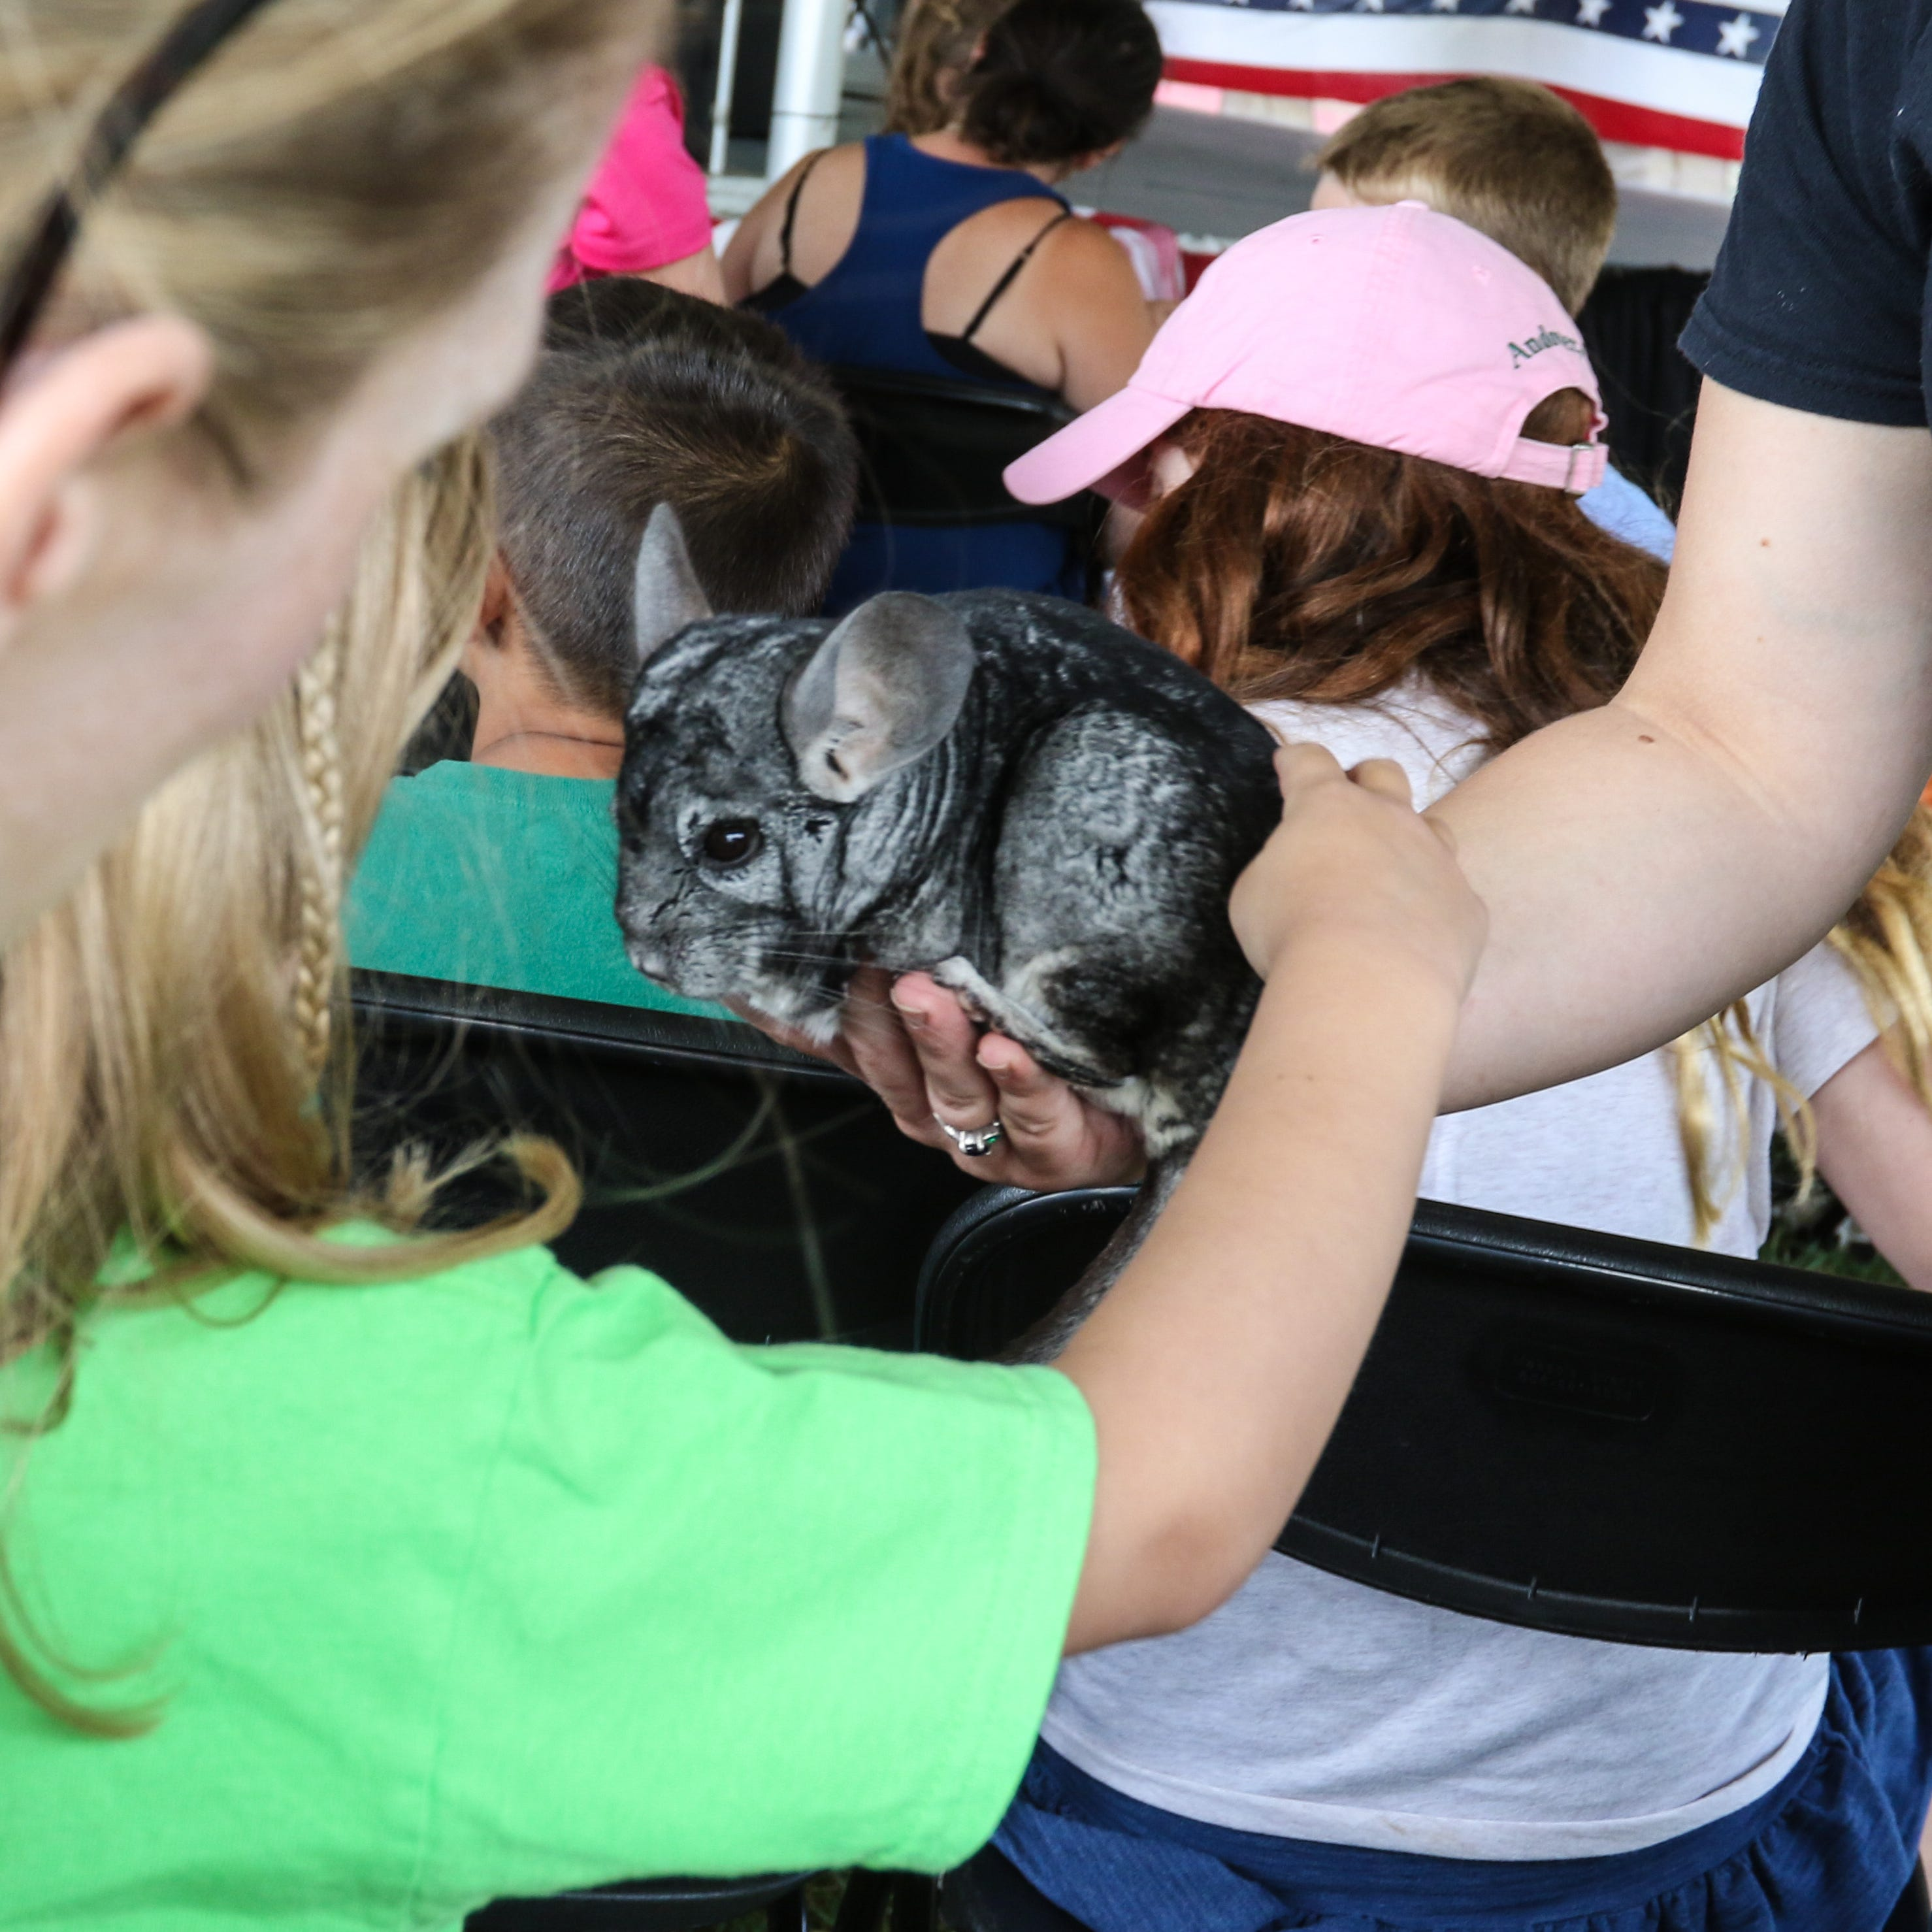 Crowds flock to Morris 4-H Fair in Chester Twp. for rides, live music and competitions